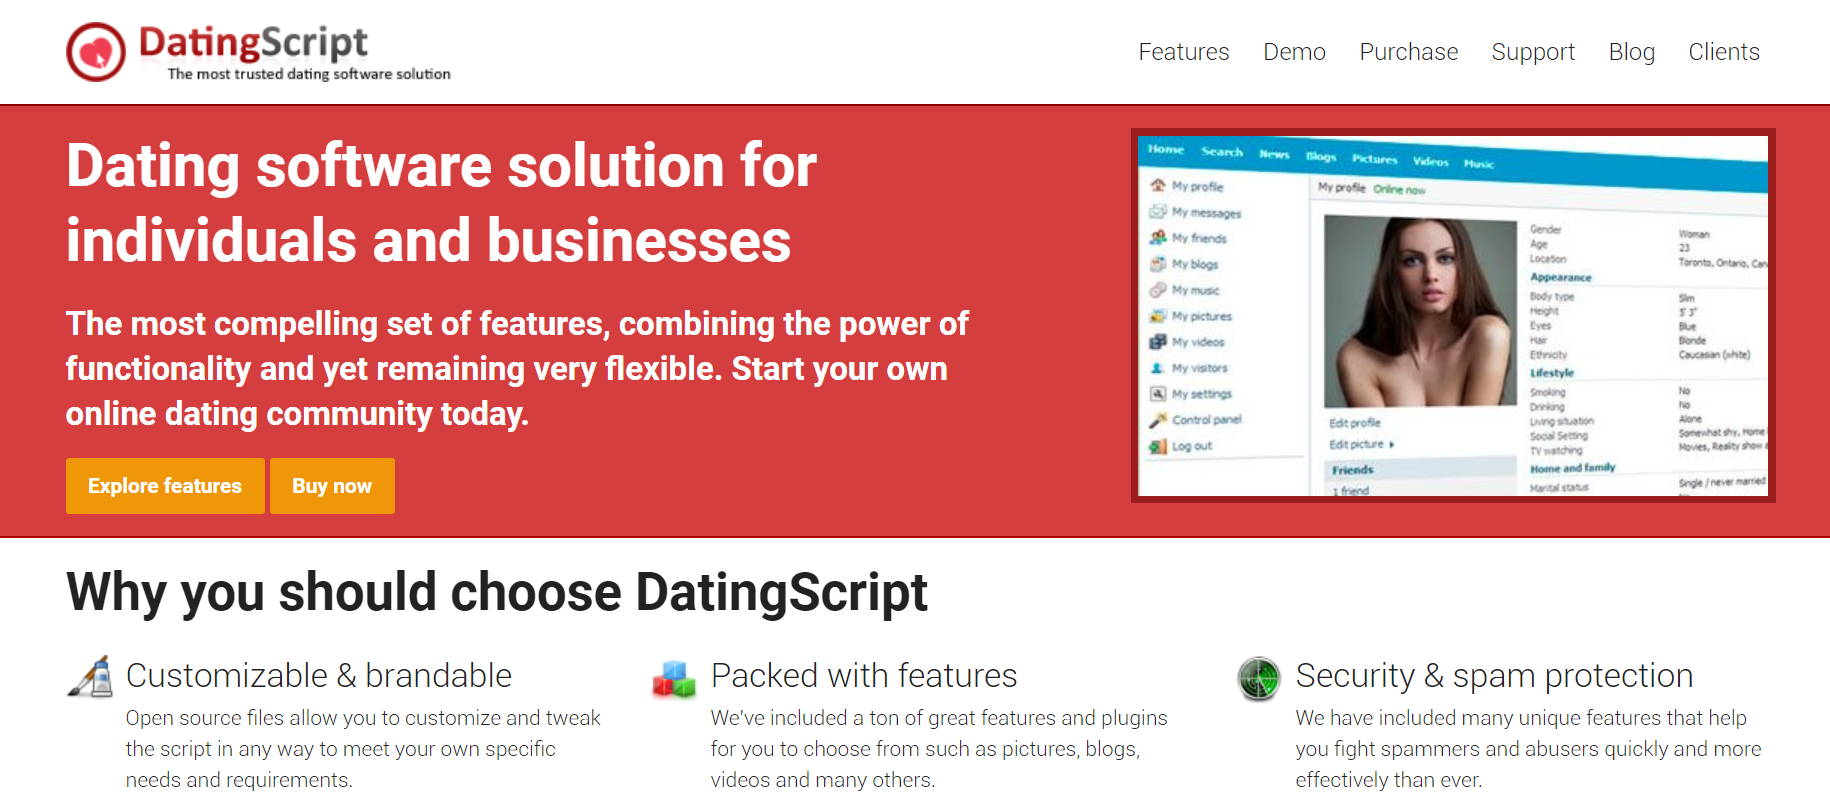 Emeeting dating programvare Nulled